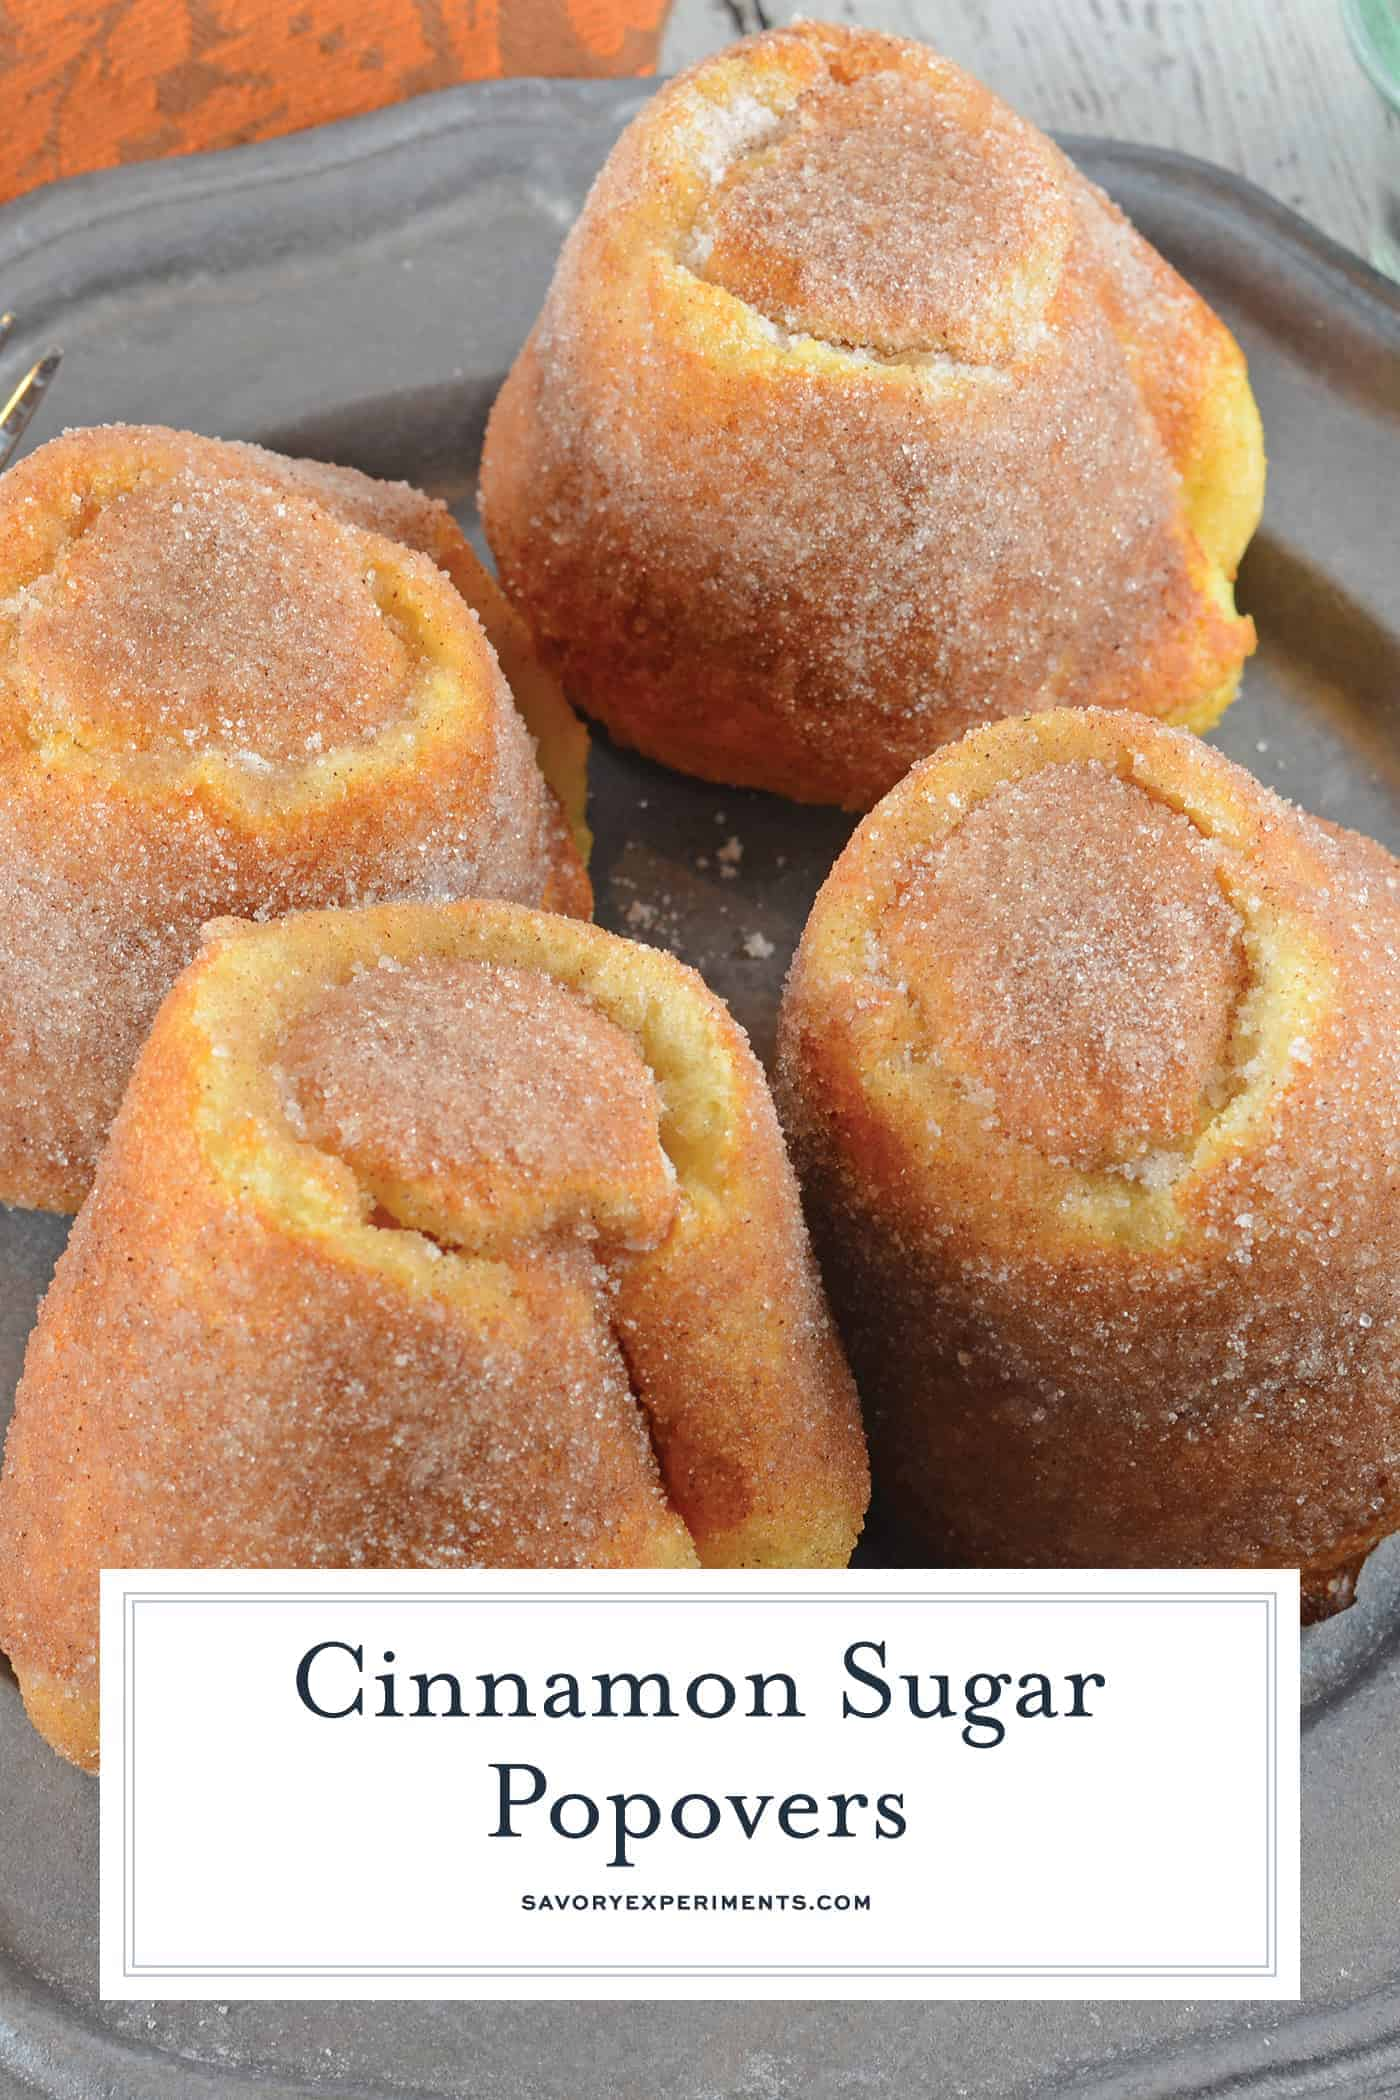 Cinnamon Sugar Popovers are easier to make than you think! A crispy outside and chewy inside coated with cinnamon and sugar, then drizzled in a fresh raspberry sauce. Perfect for a decadent breakfast or dessert. #popovers #howtomakepopovers www.savoryexperiments.com